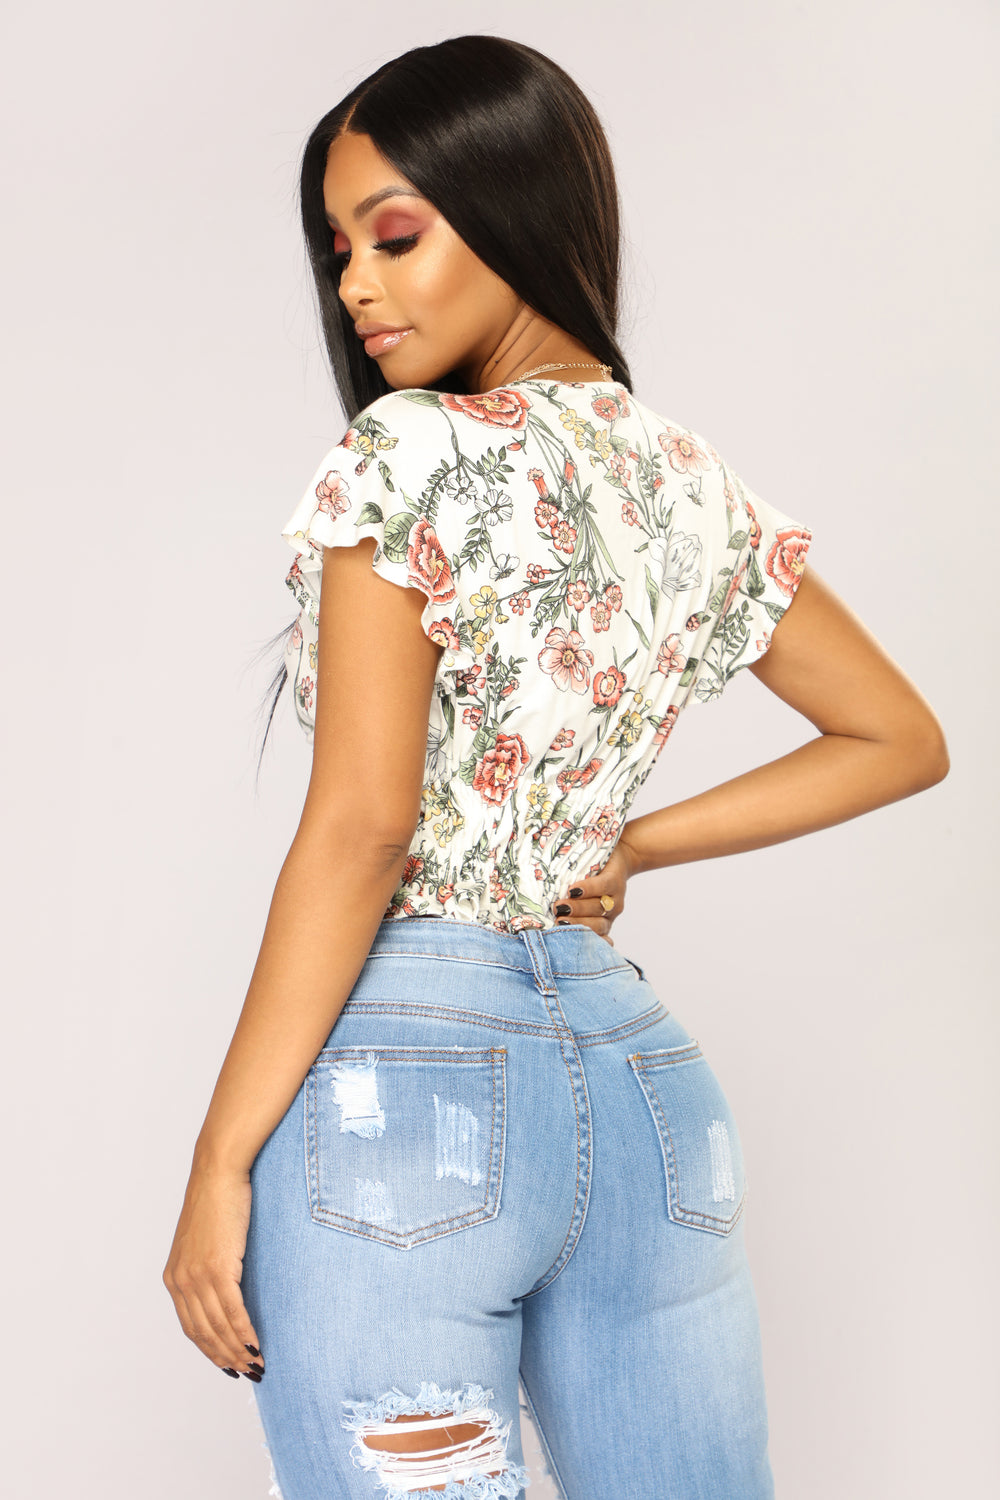 Talk Flowers To Me Floral Top - White/Combo